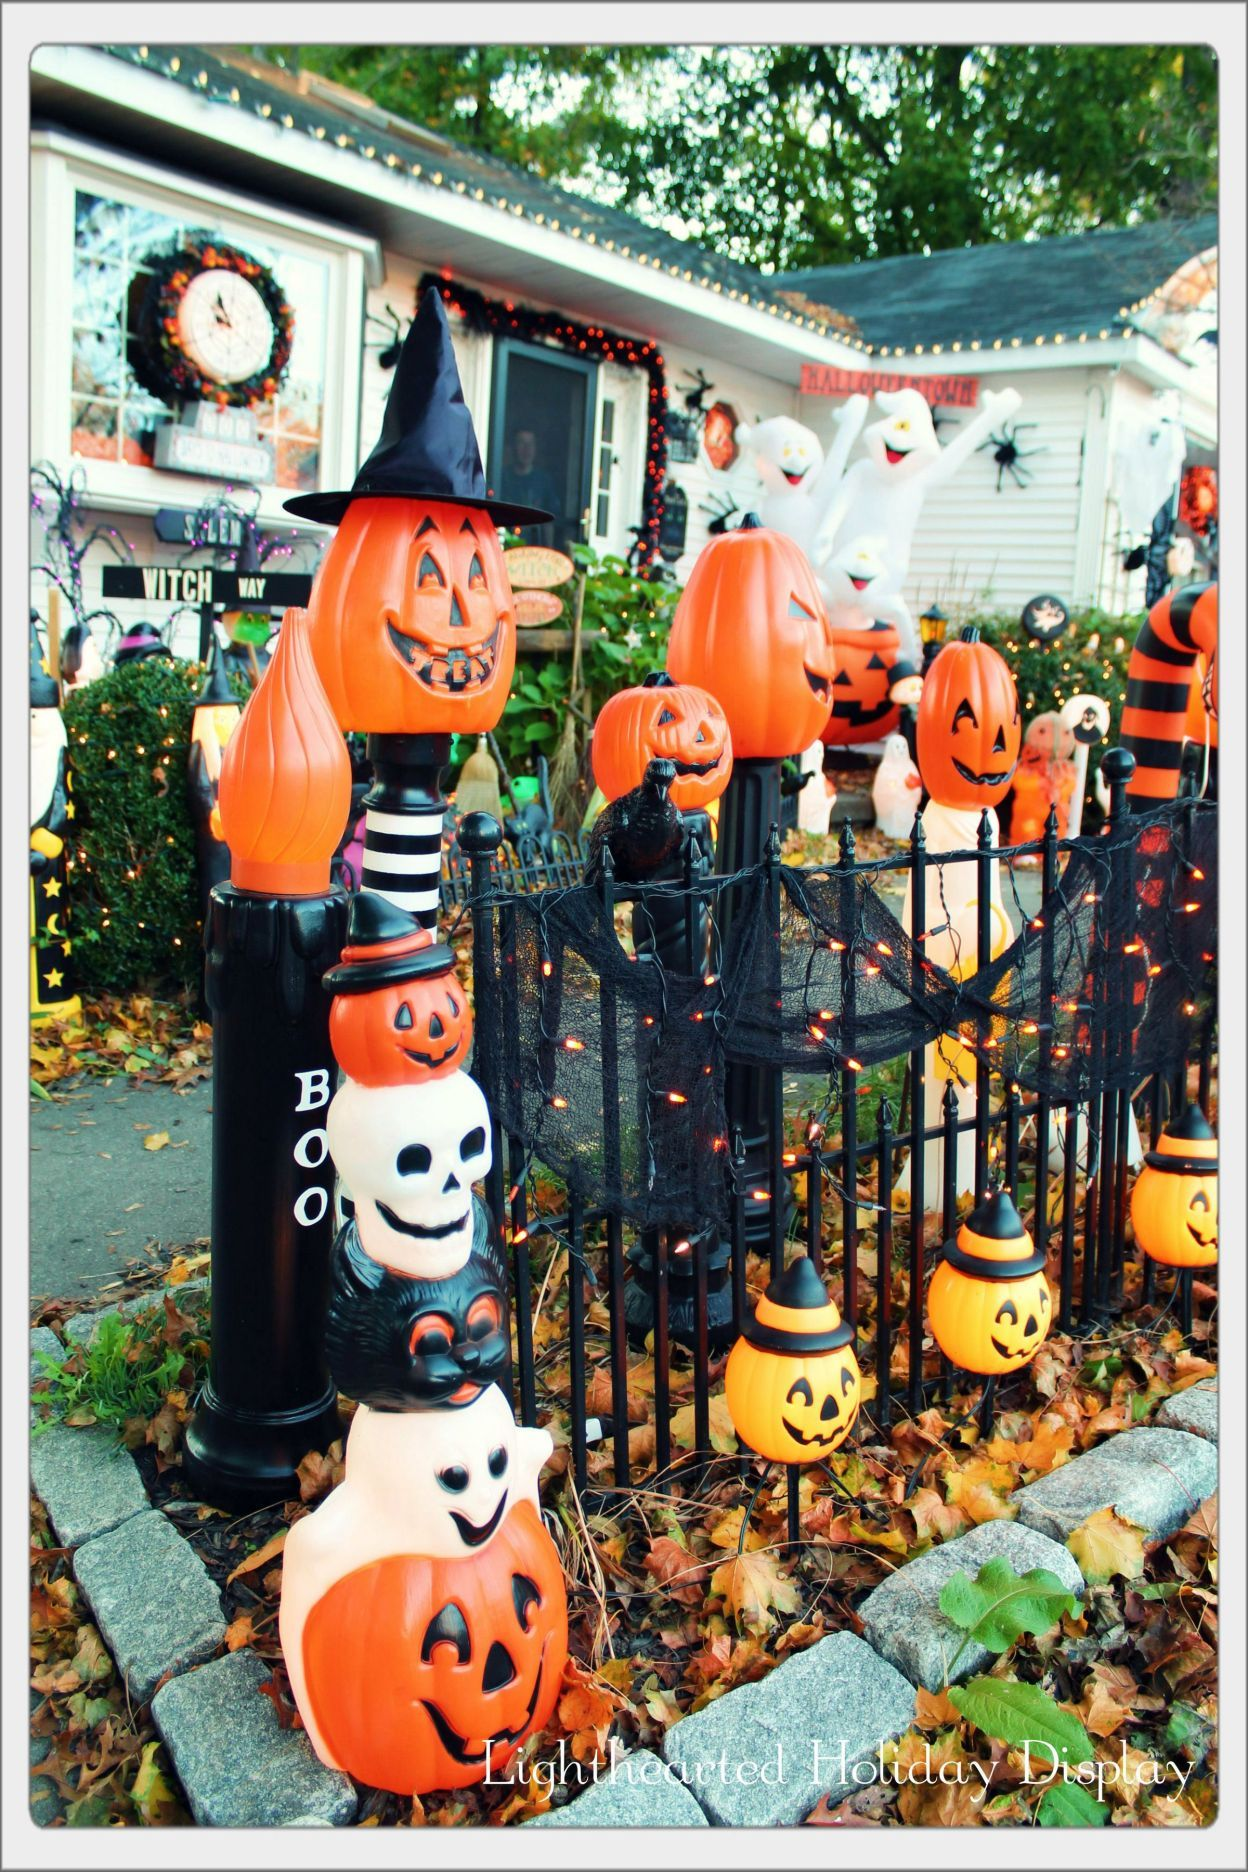 40 Vintage Halloween Decor With Toys Ornaments Ideas Inspira Spaces Halloween Outside Vintage Halloween Decorations Outdoor Halloween